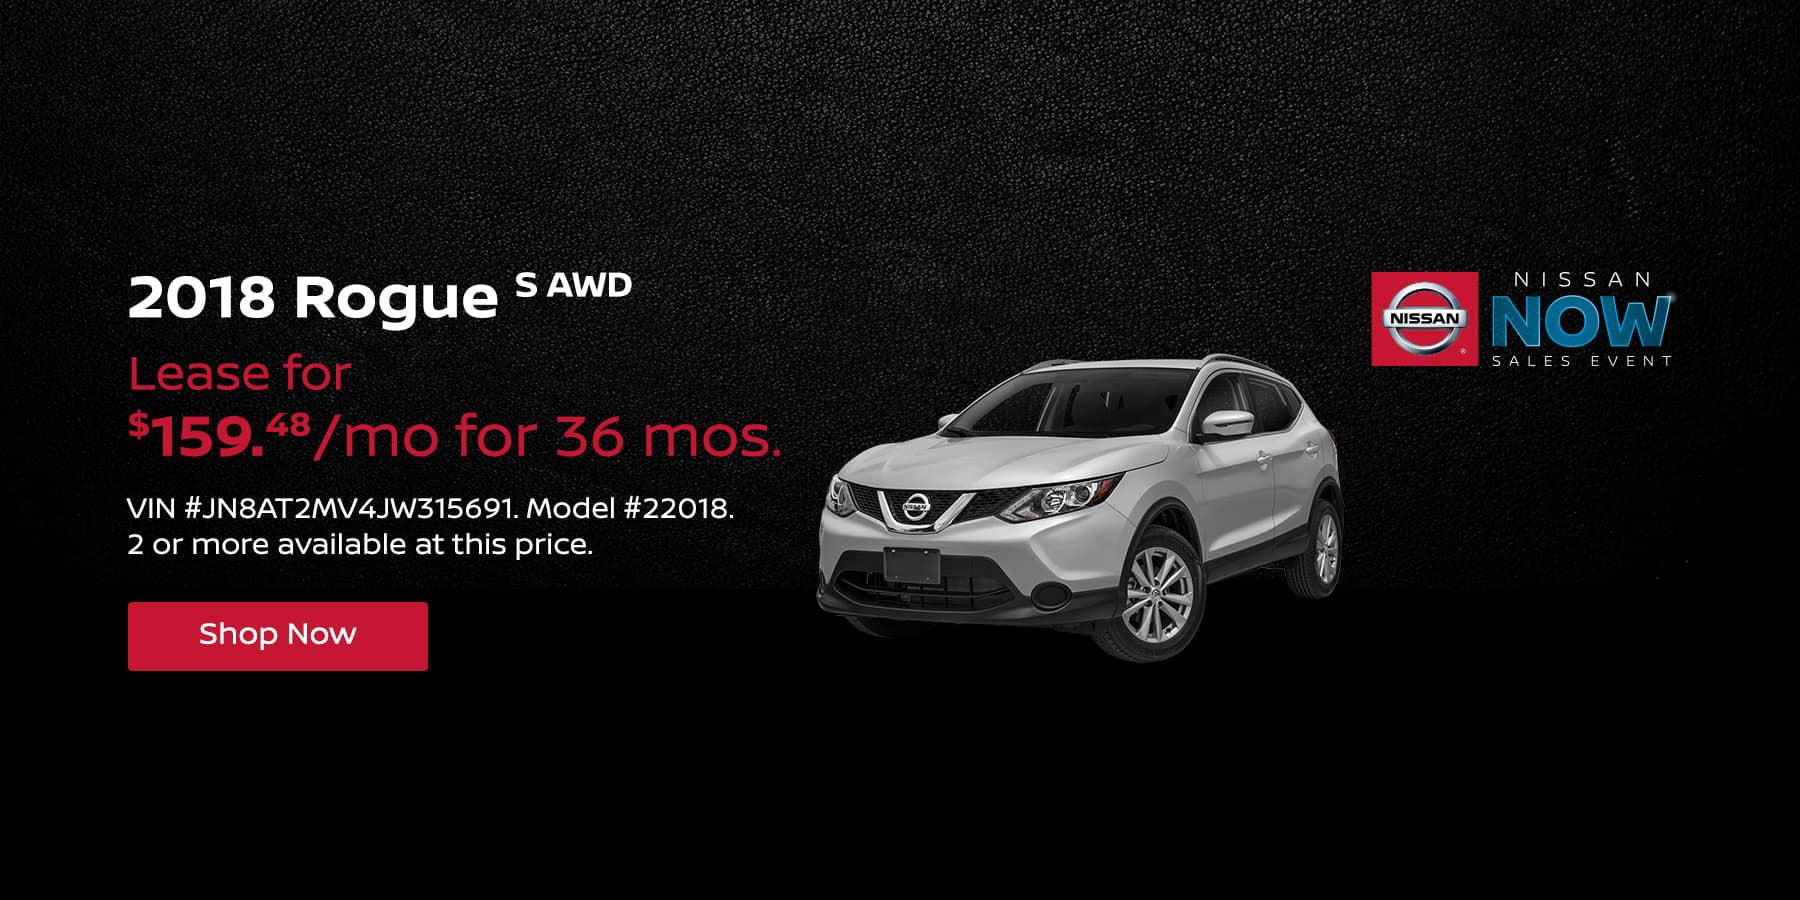 2018 Rogue S February Offer